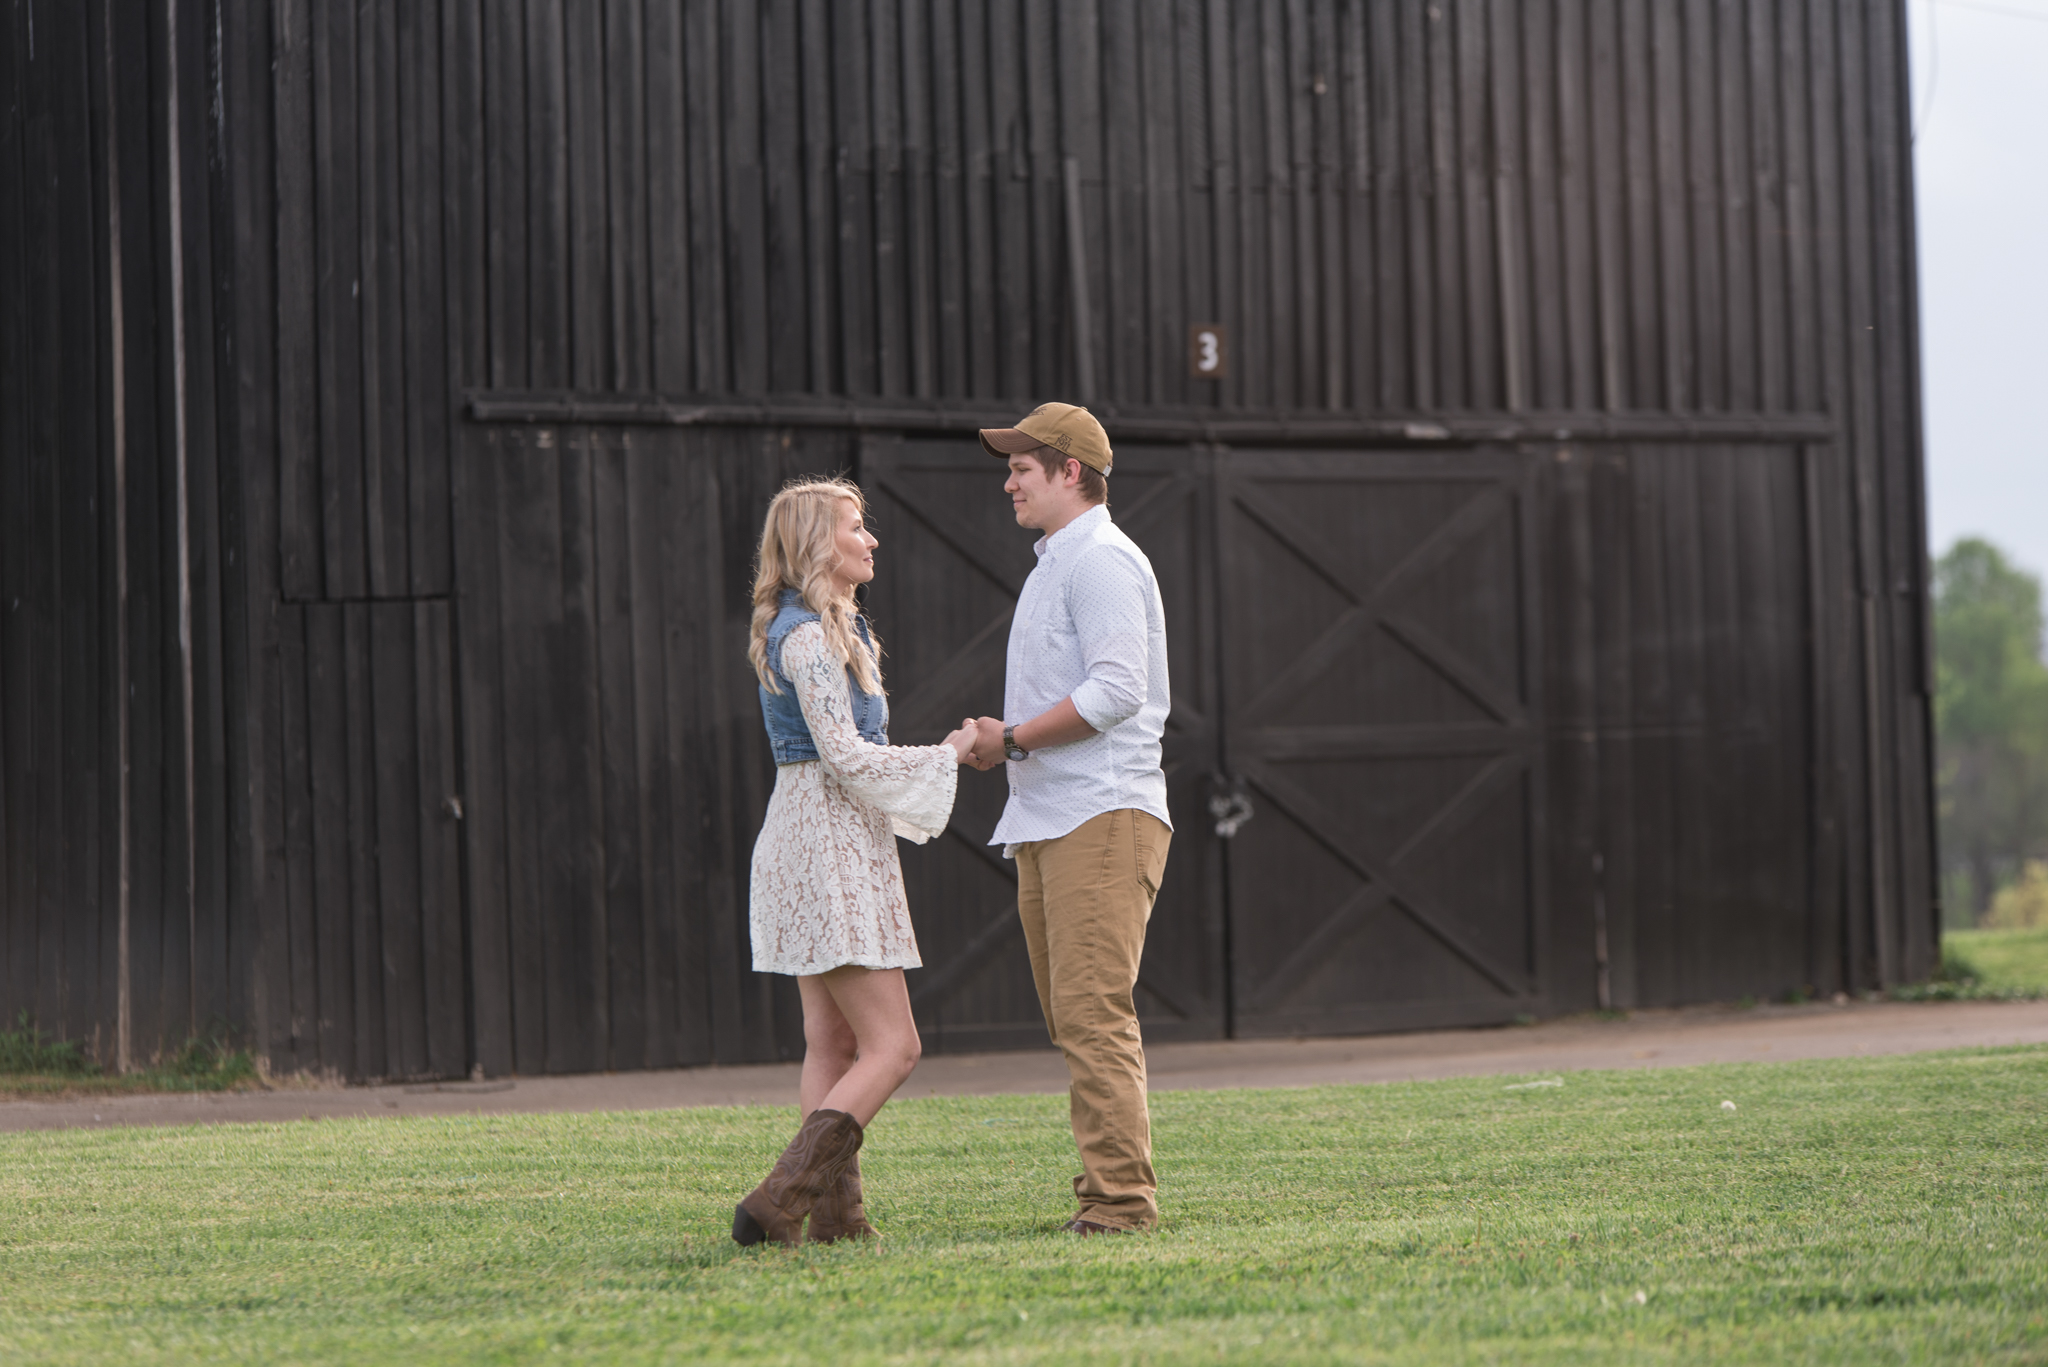 Lexington KY engagement session, couple holding hands in front of barn